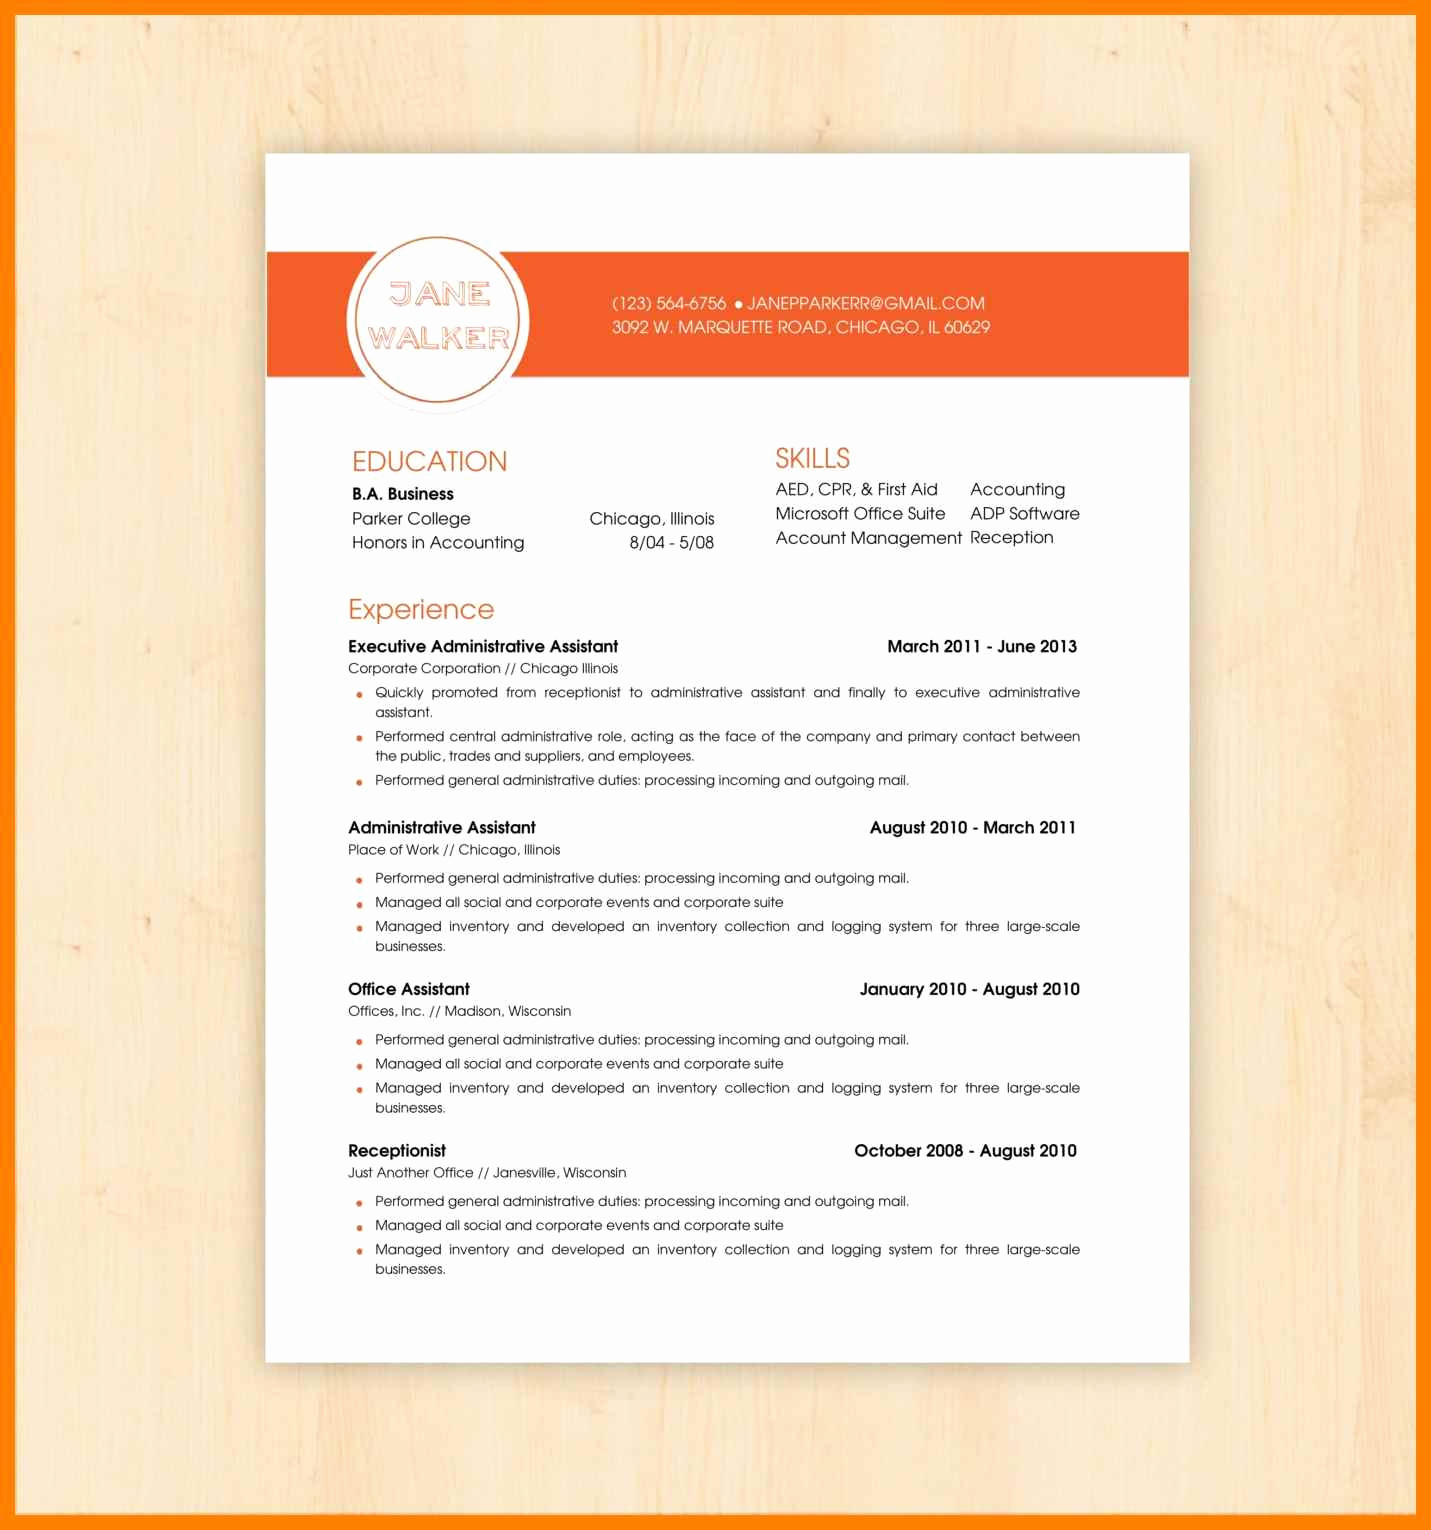 Microsoft Word Template Downloads Fresh Word Document Templates Free